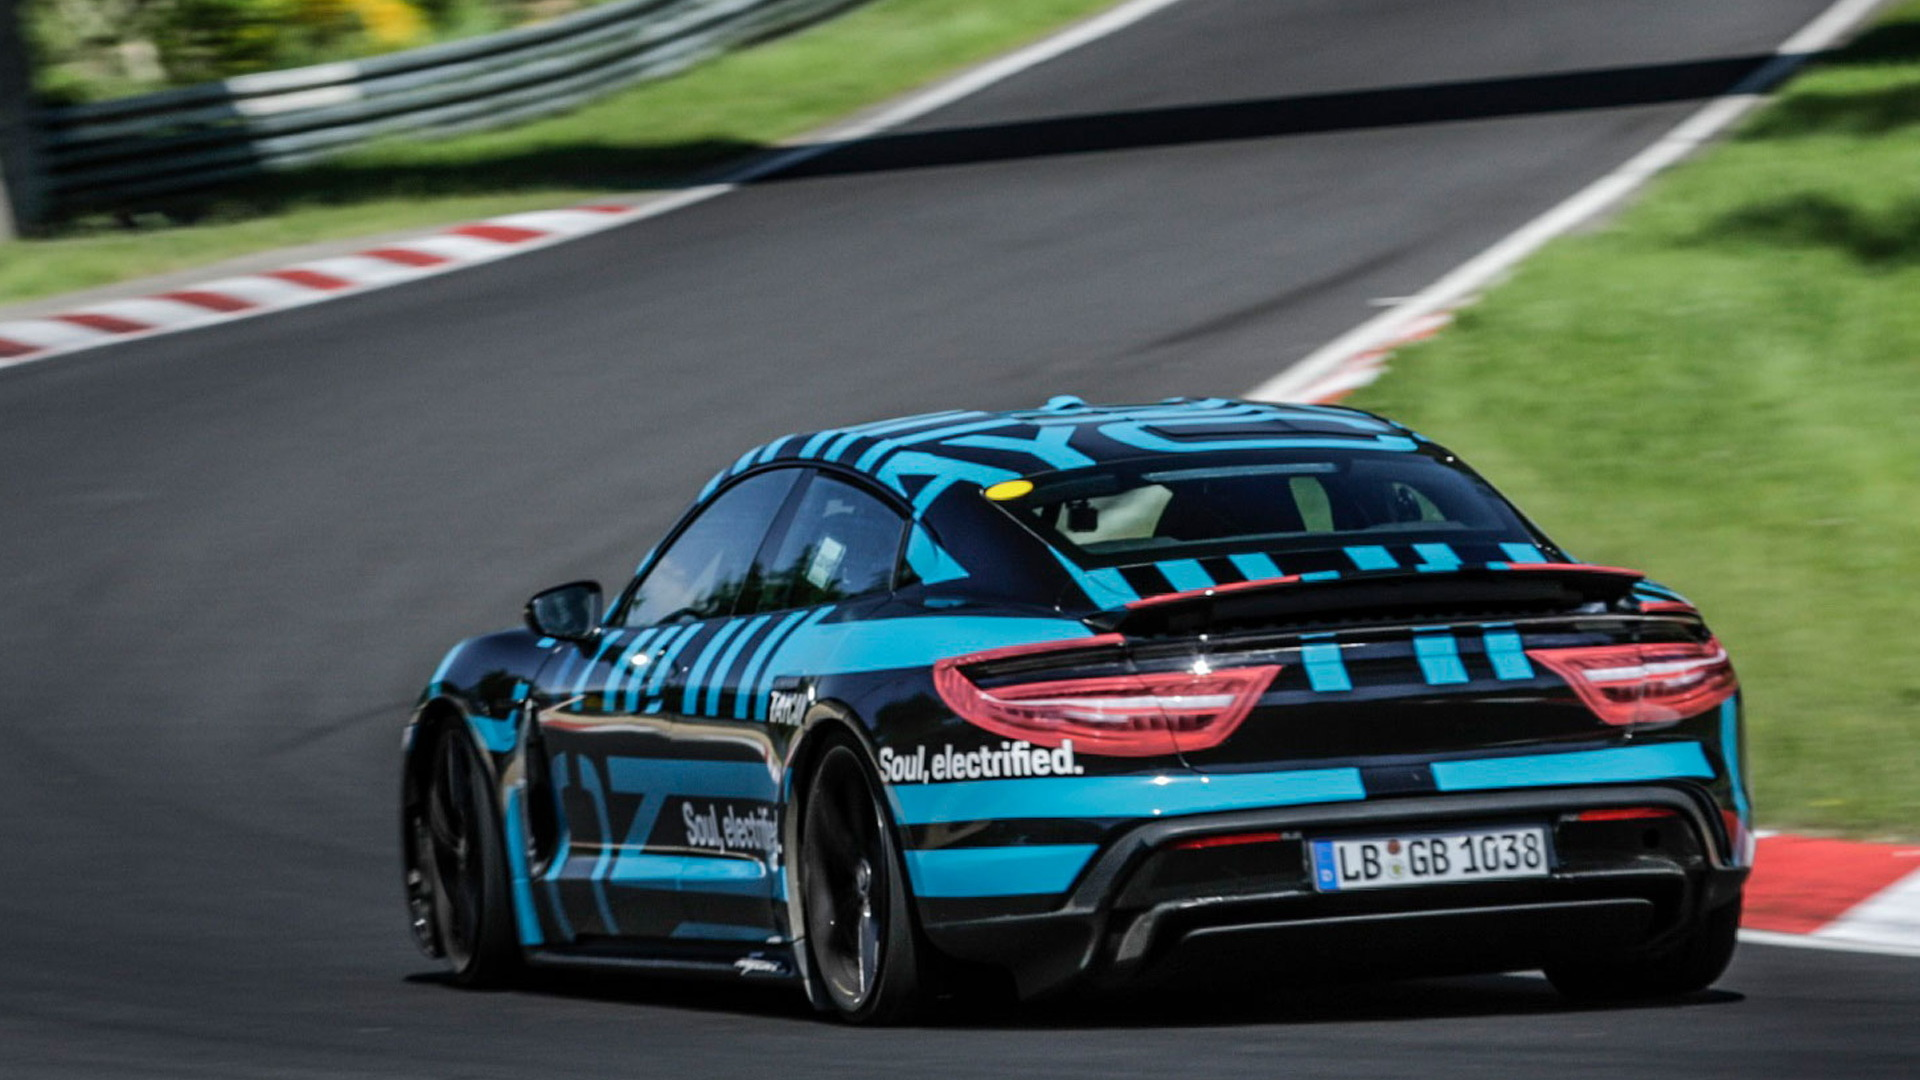 Porsche Taycan at tests at the Nurburgring